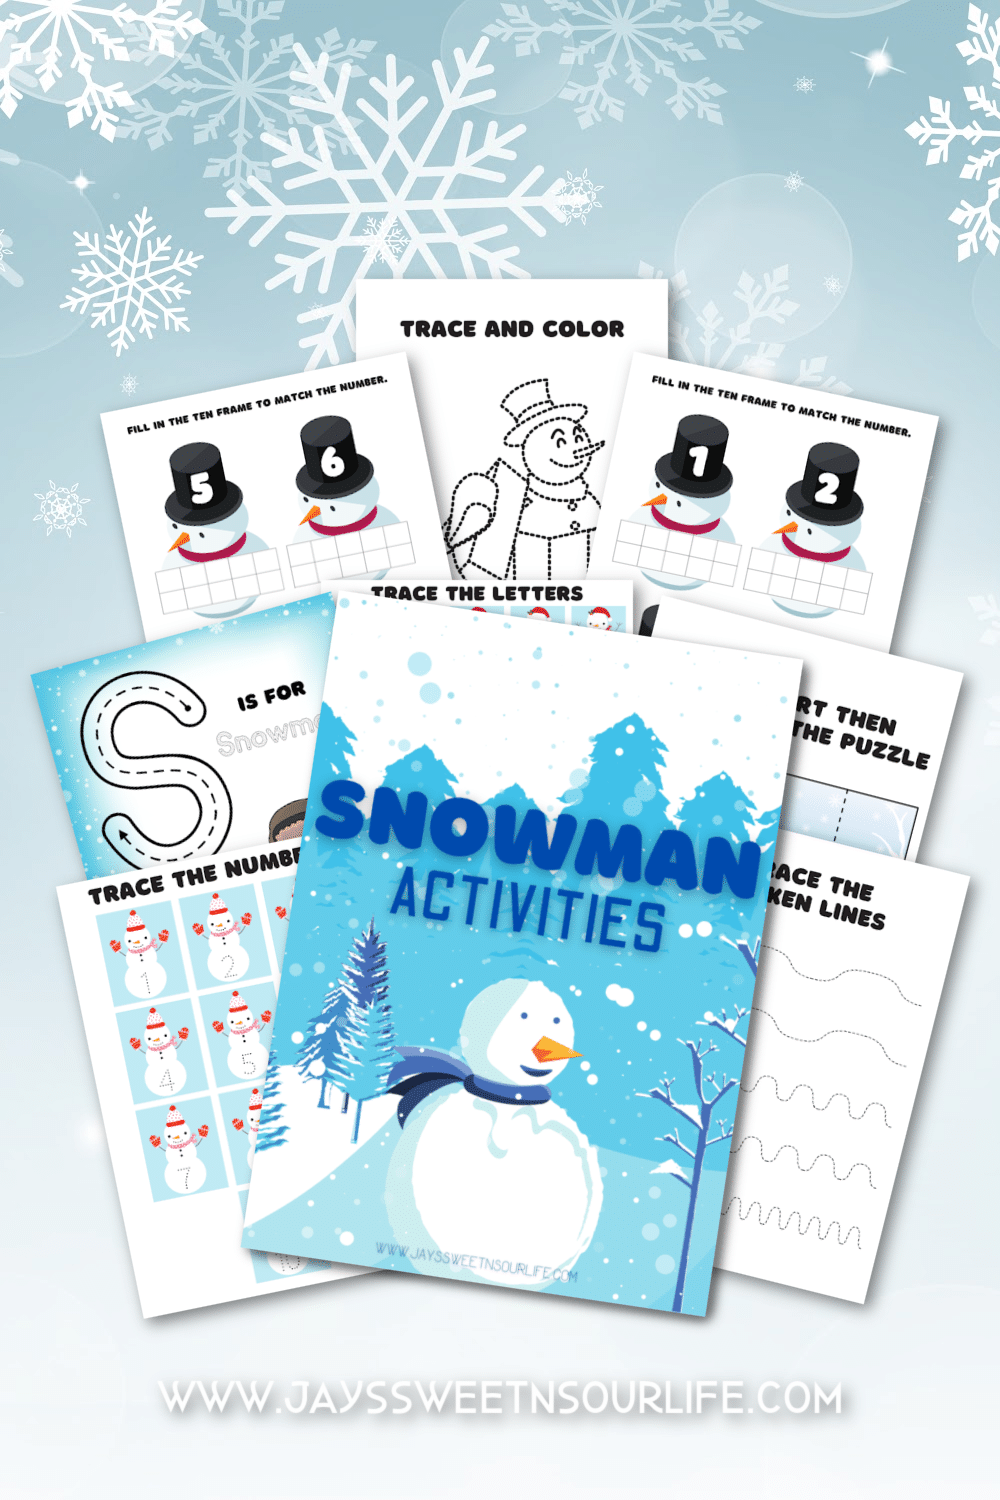 Free Snowman Printables. Grab these Free Snowman Printables, filled with fun snowman themed activities, coloring sheets, and more! These Preschool Snowman Activities are a huge hit at any holiday event.